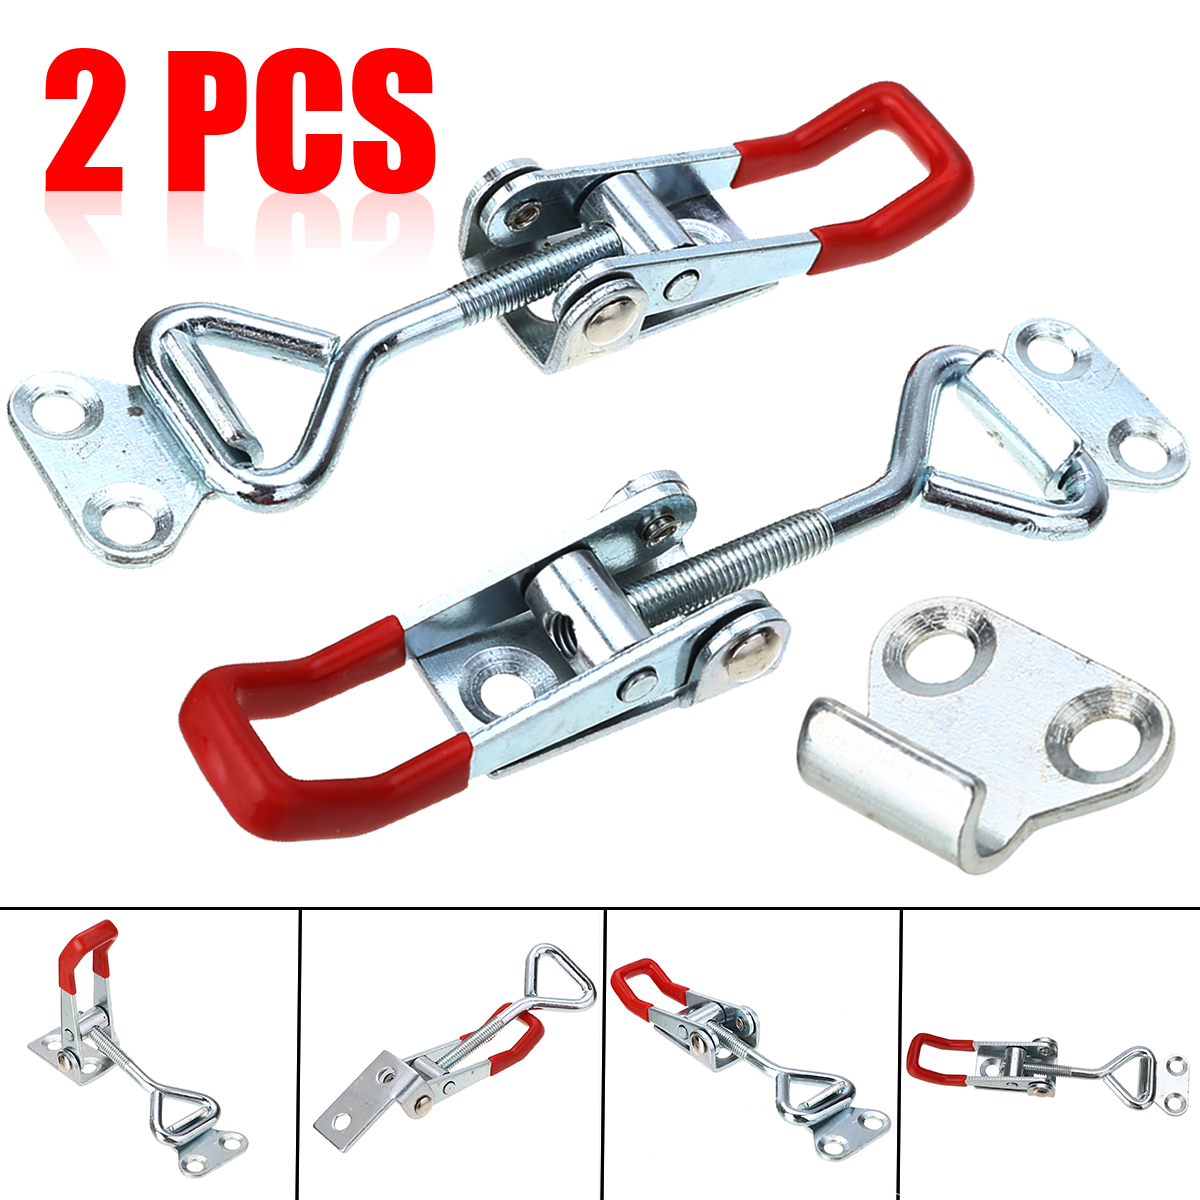 2pcs Toggle Latch Catch Toggle Clamp Adjustable Cabinet Boxes Lever Handle Lock Hasp For Sliding Door Furniture Hardware